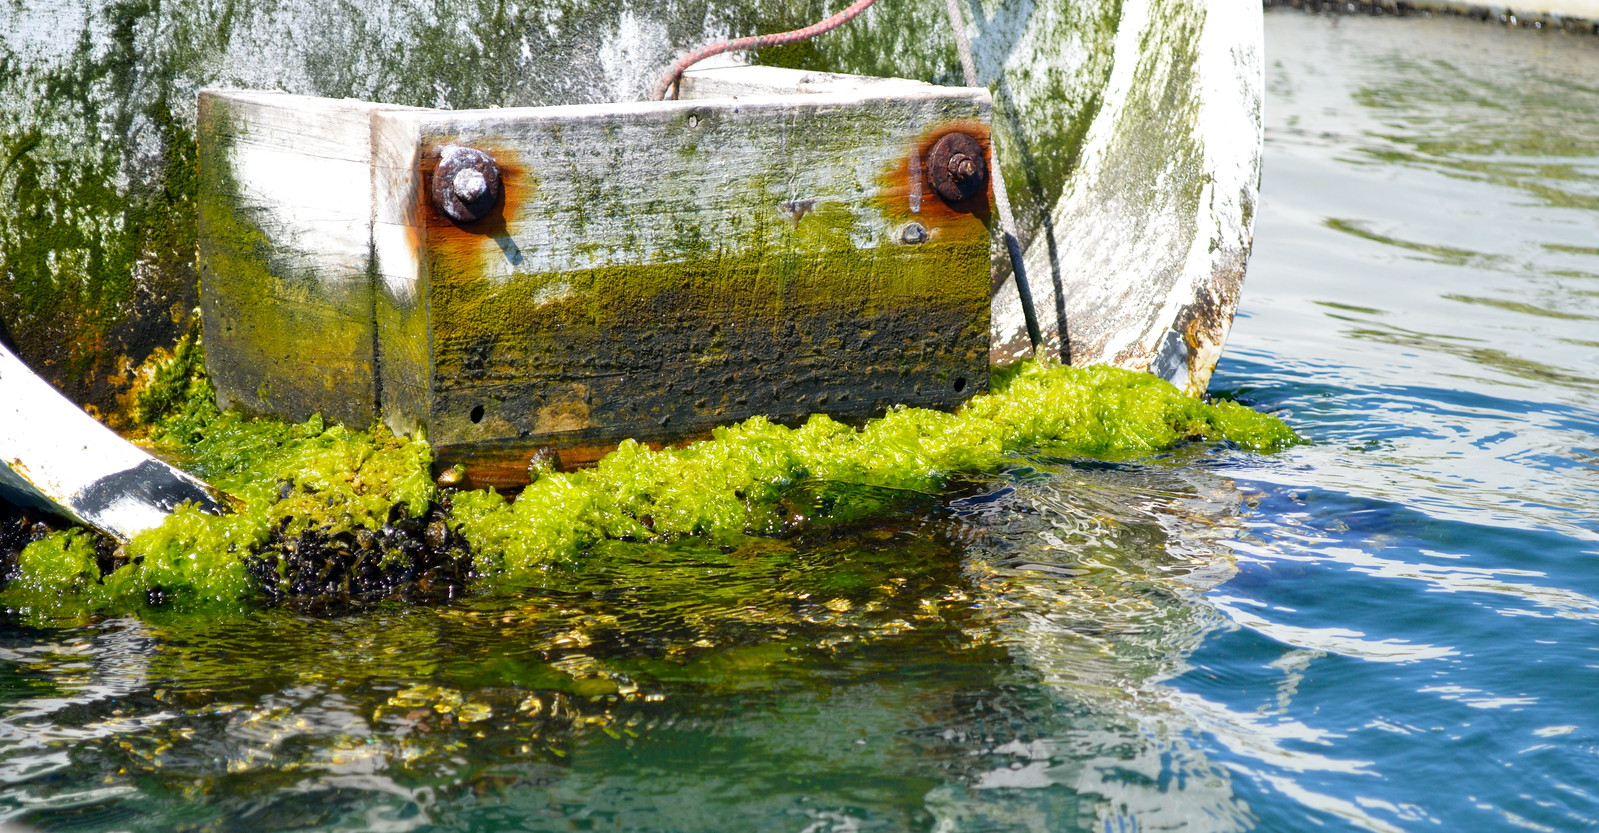 A neglected boat